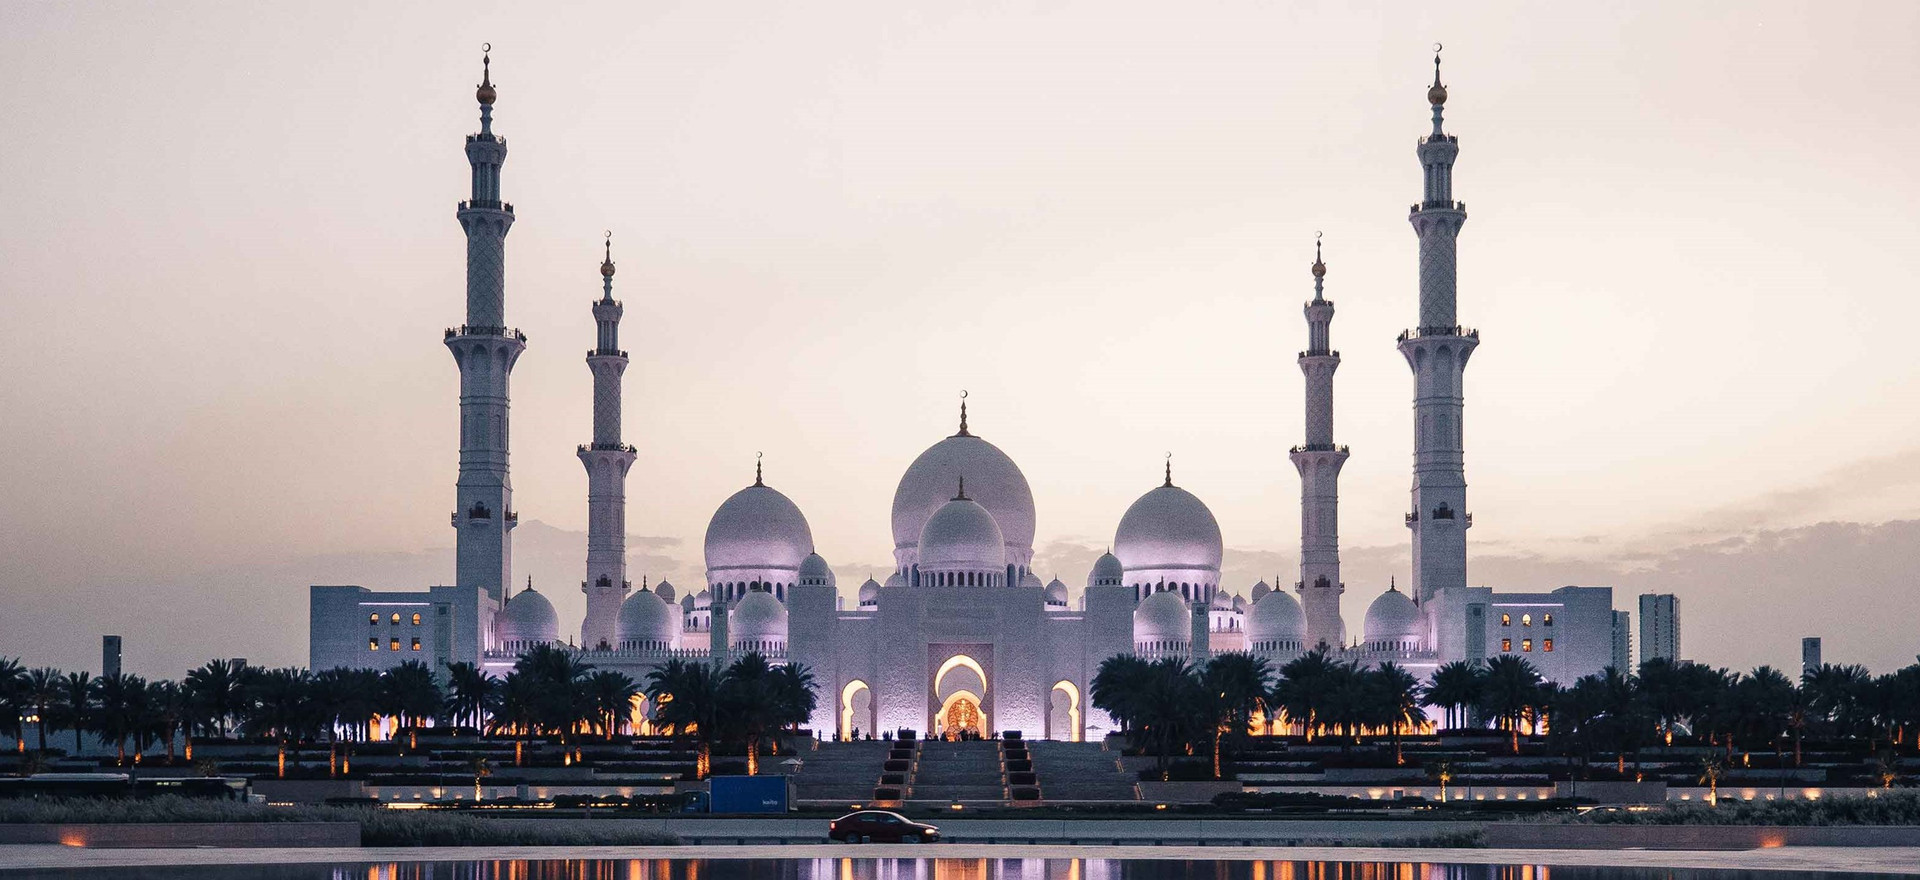 Abu Dhabi shk zayed grand mosque